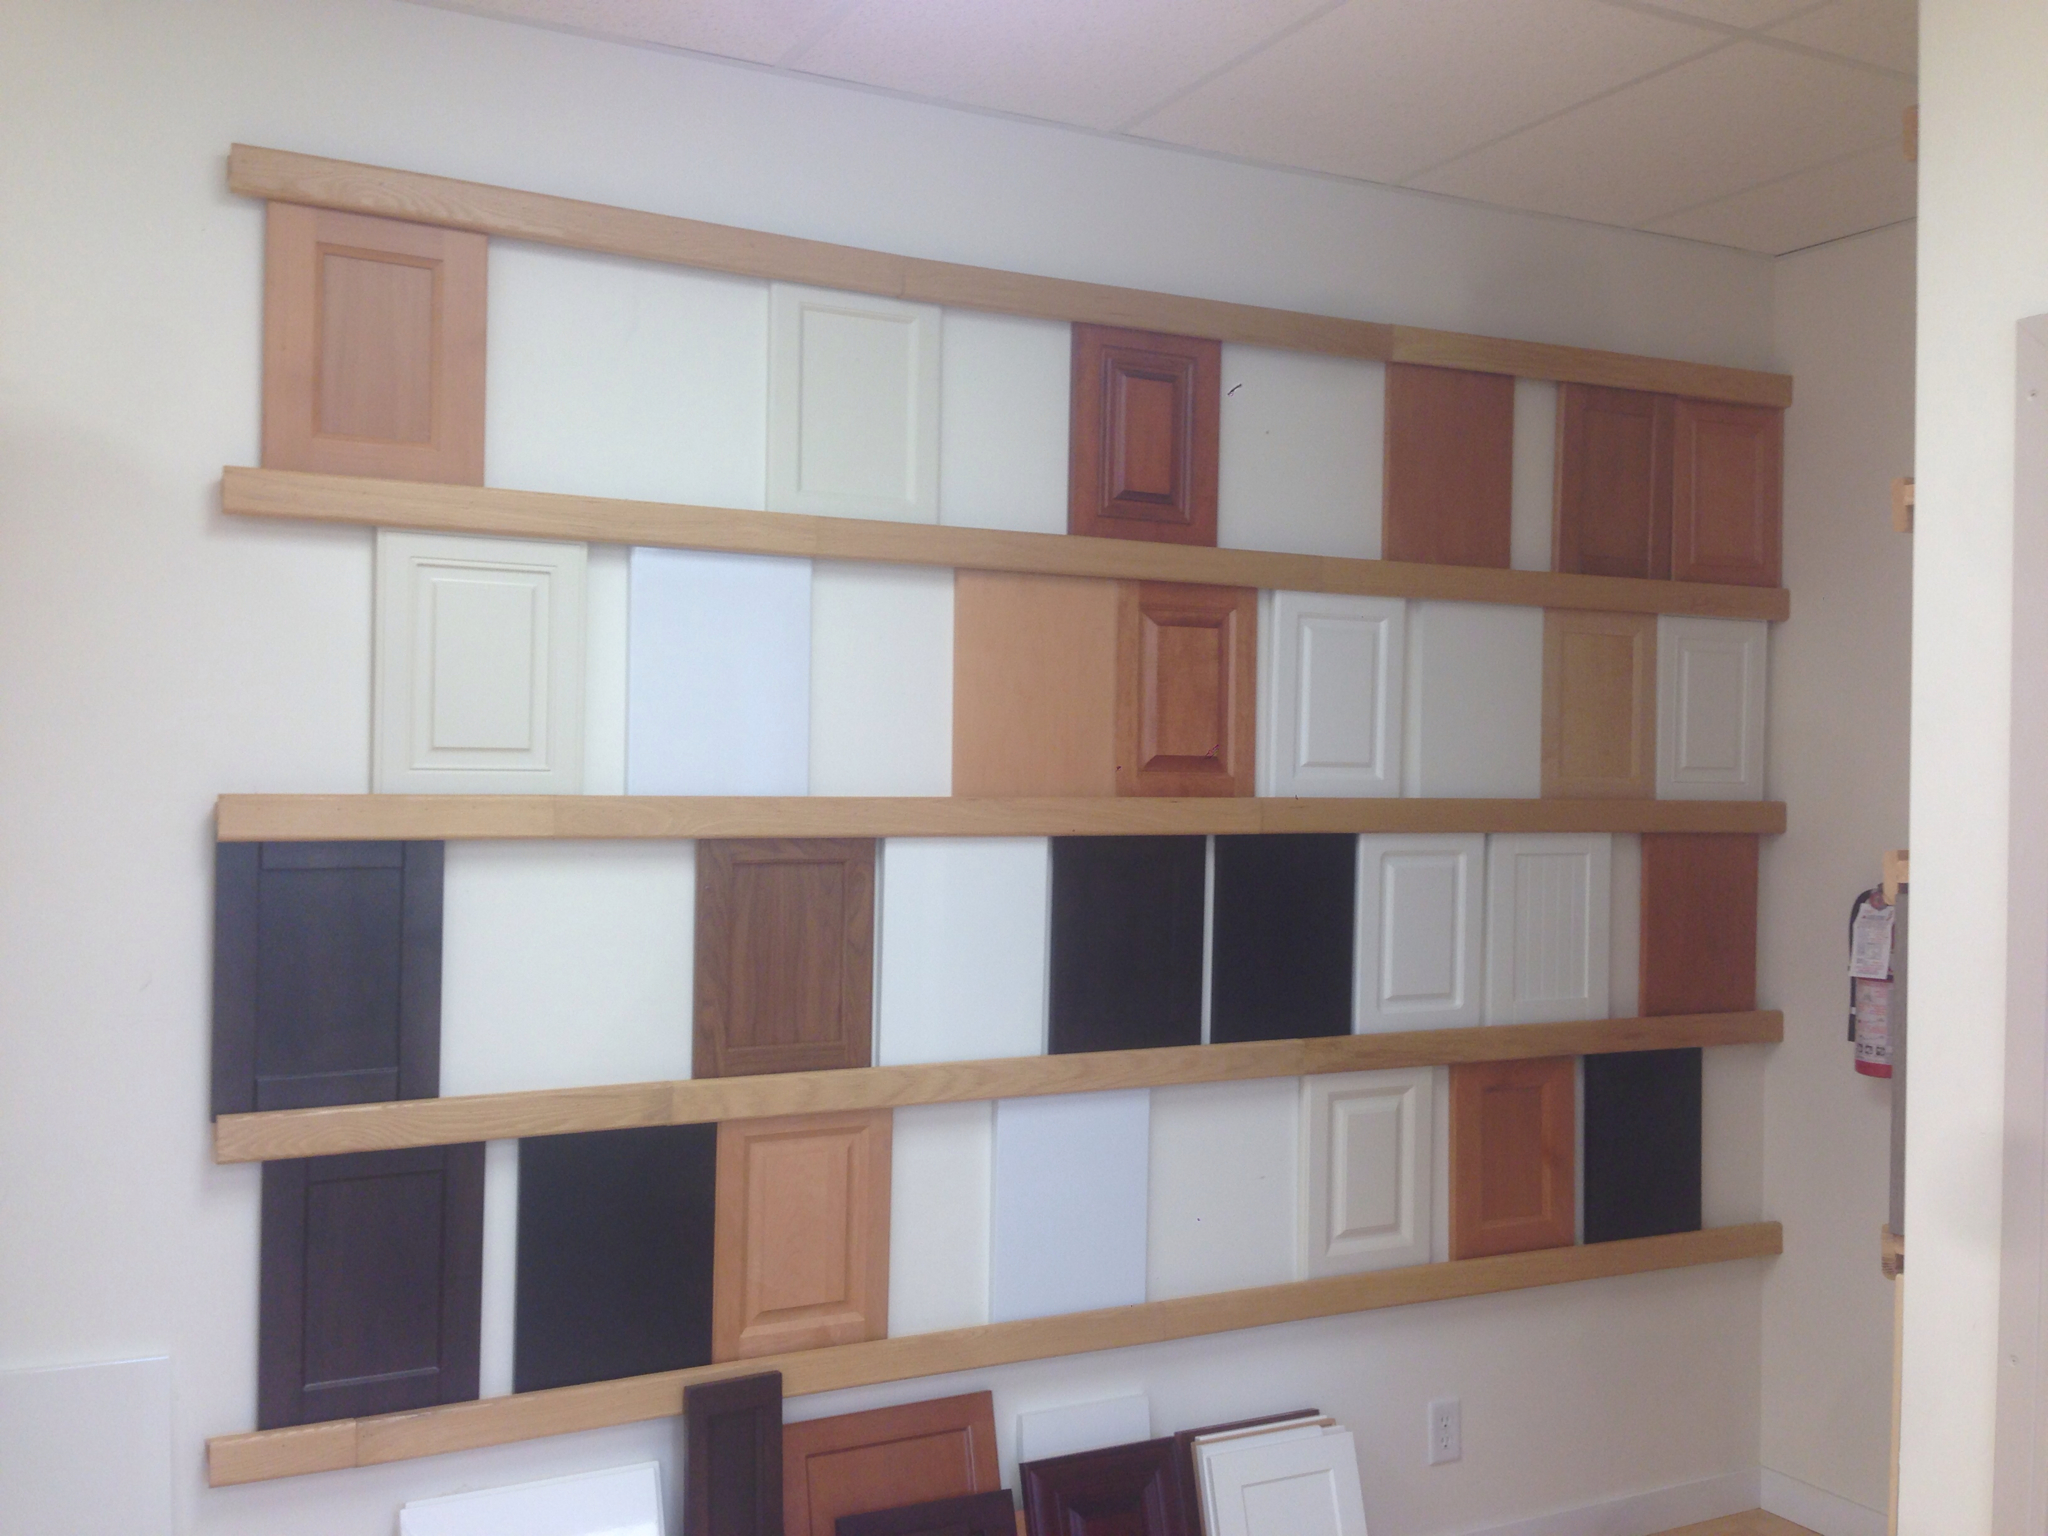 Superior Cove Tops & Cabinets